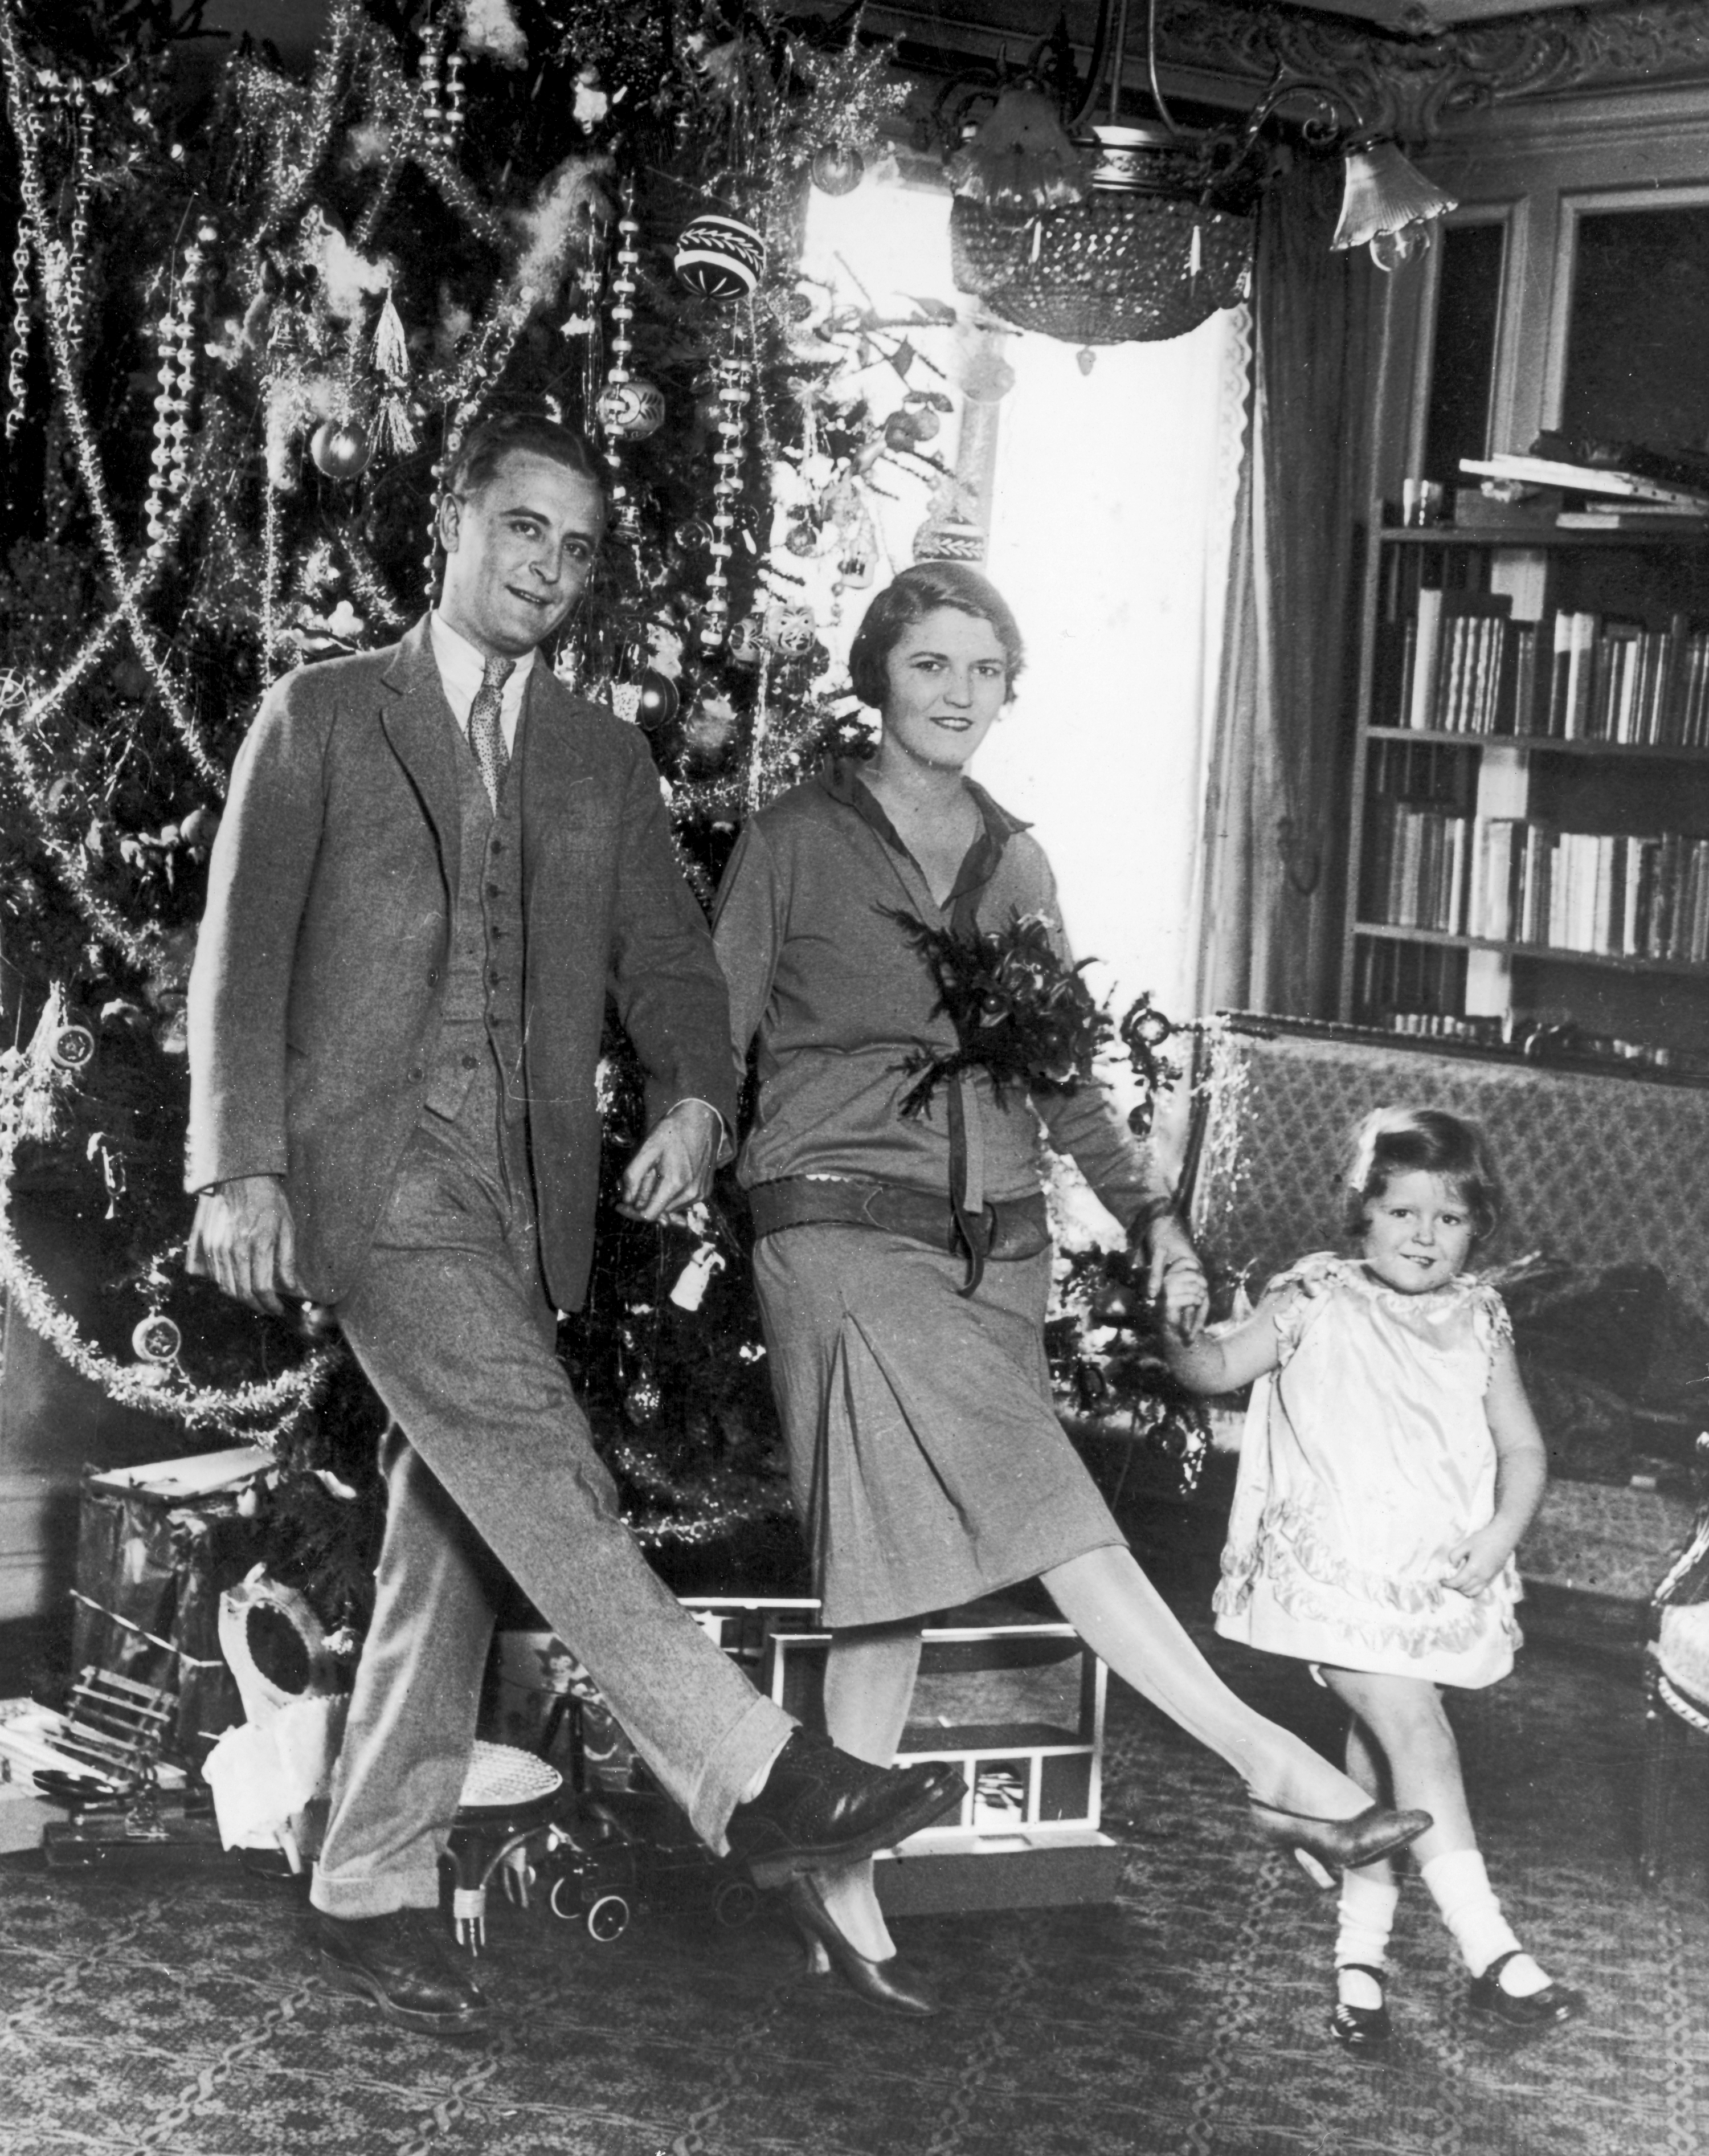 American author F Scott Fitzgerald (1896 - 1940) dances with his wife Zelda Fitzgerald (nee Sayre) (1900 - 1948) and daughter Frances (aka 'Scottie') in front of the Christmas tree in Paris. (Photo by Hulton Archive/Getty Images)